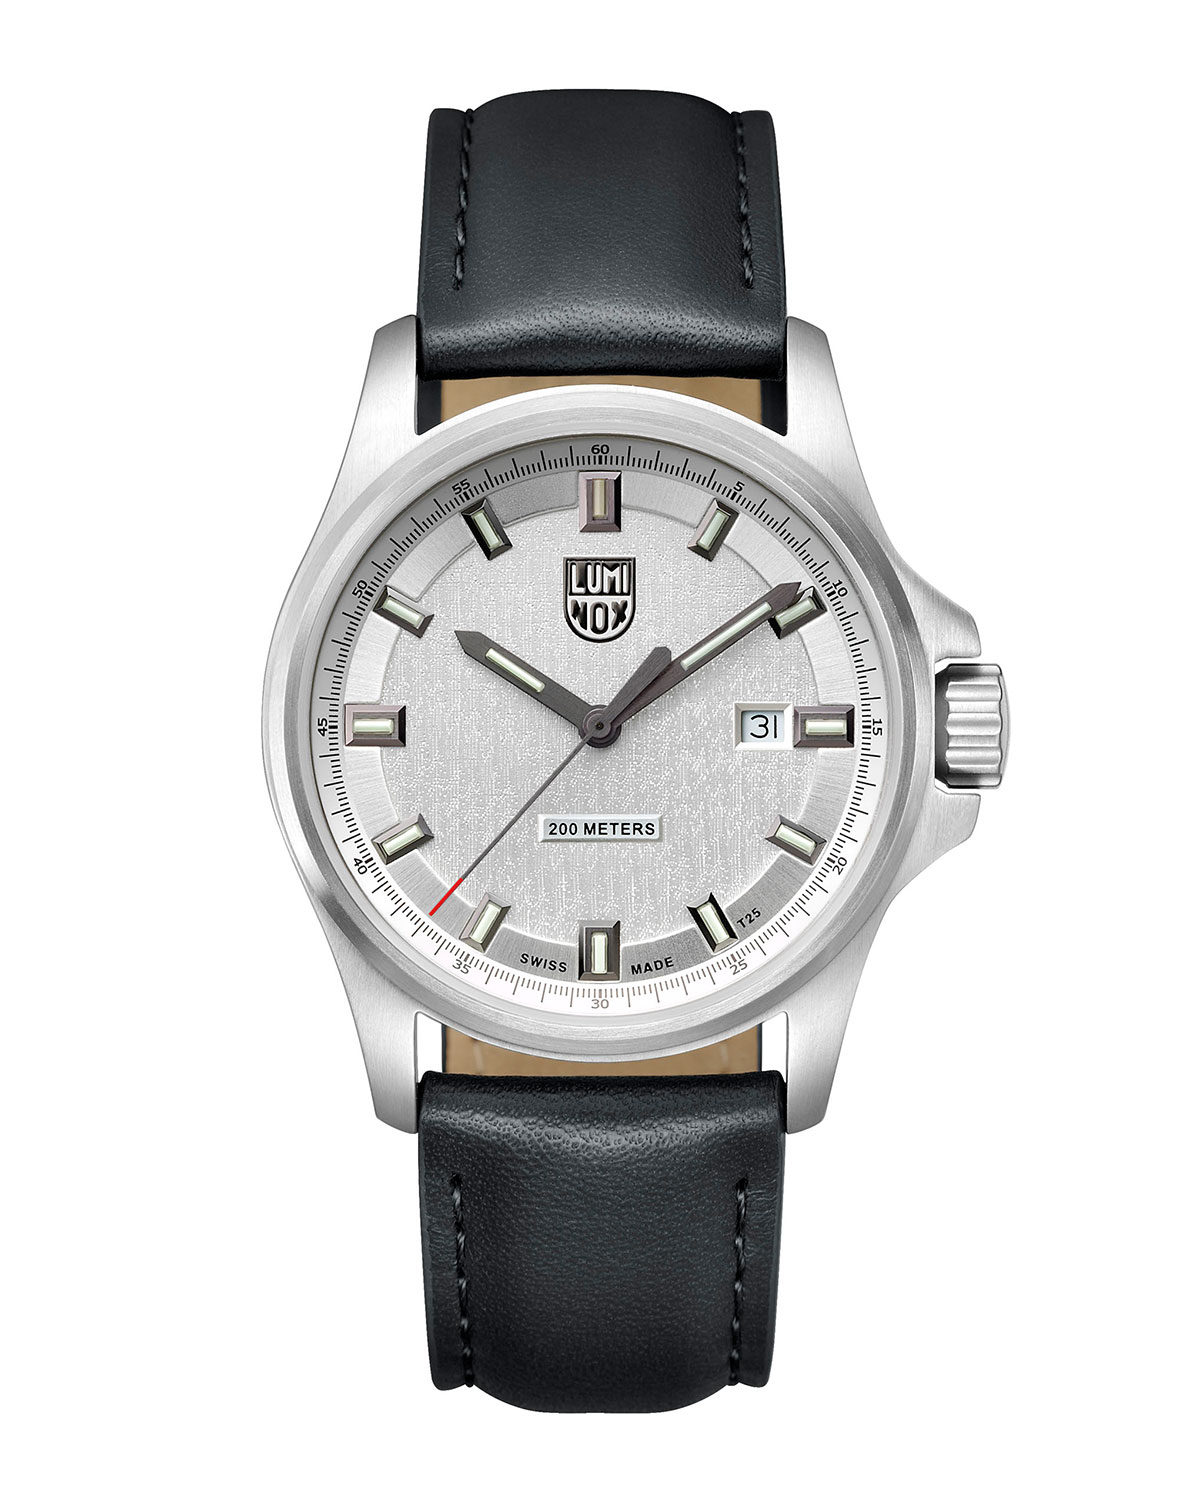 Men's Dress Field Watch with Leather Strap